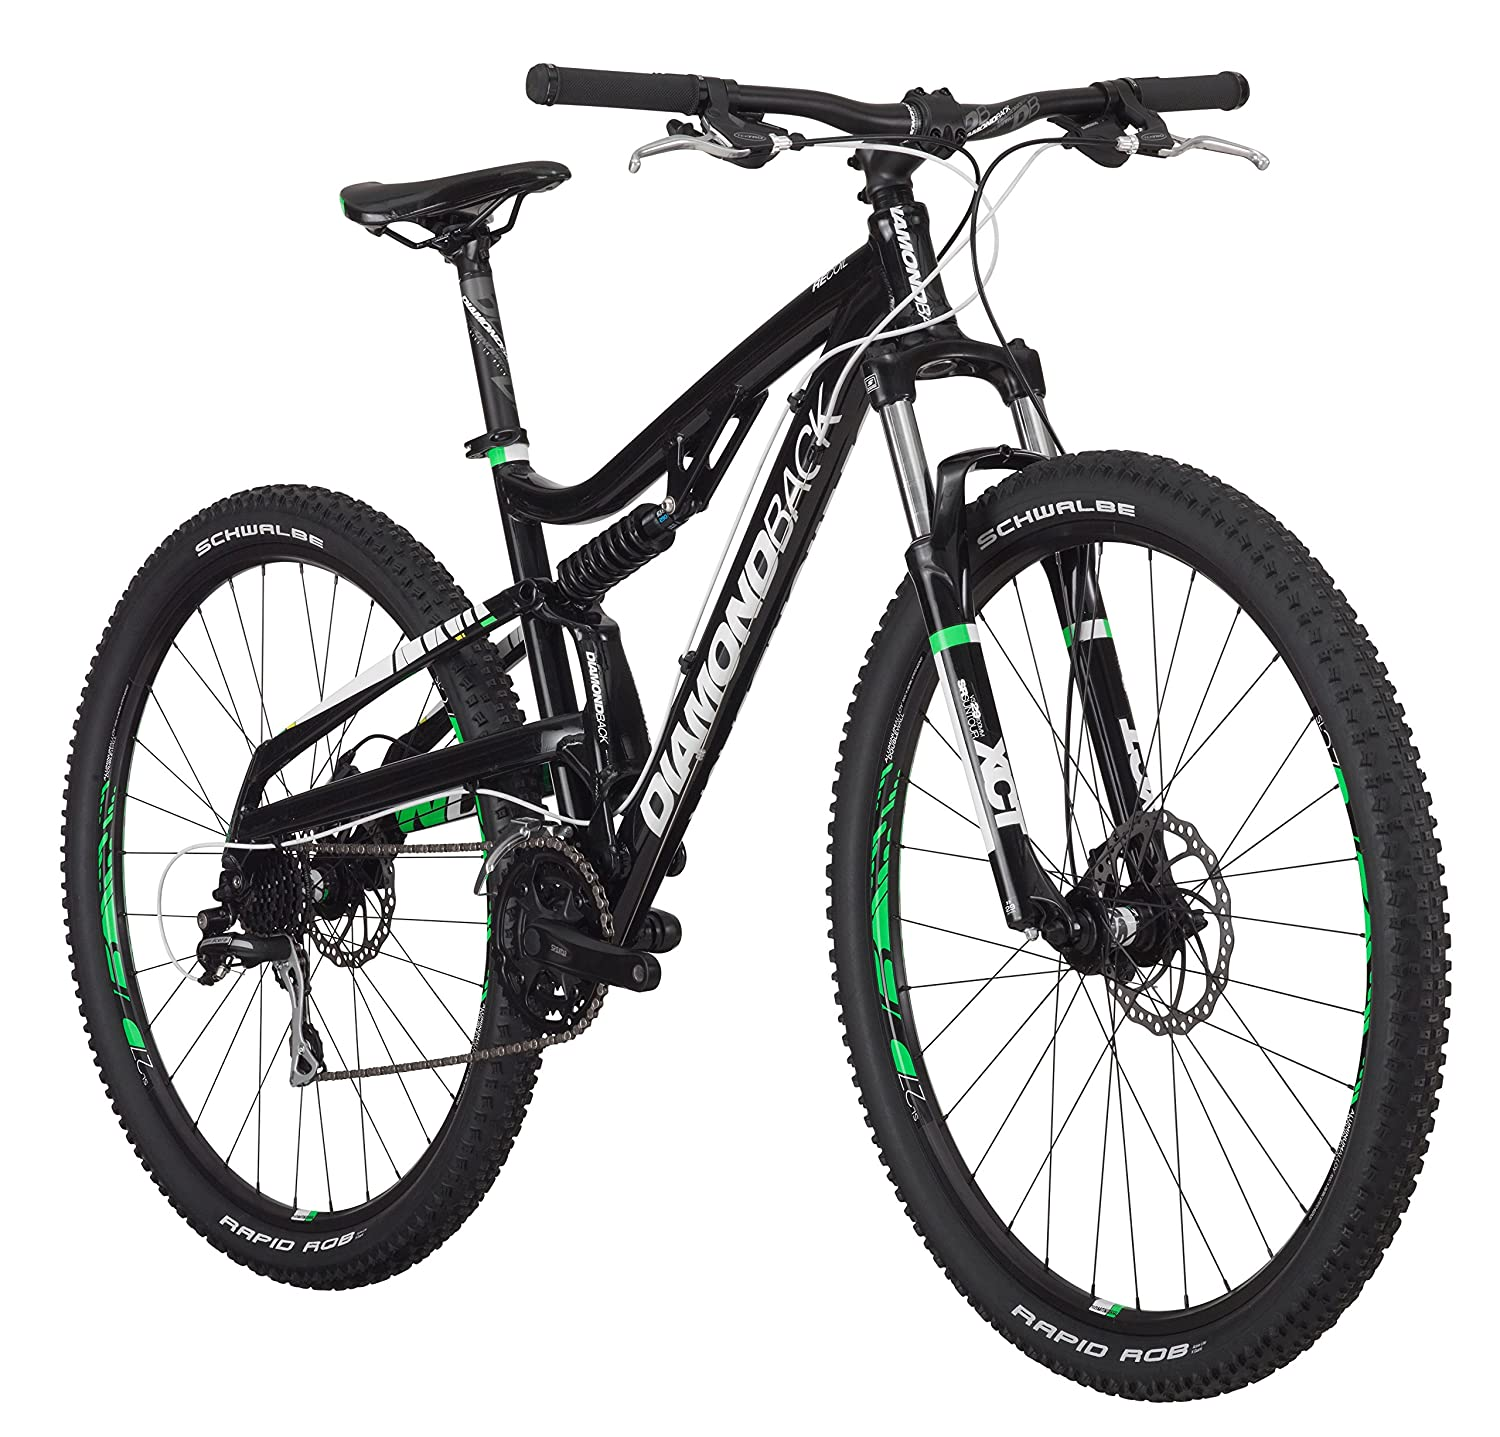 Diamondback-Bicycles-Recoil-Trail Full-Suspension-Mountain-Bike-with-27.5-Inch-Wheels